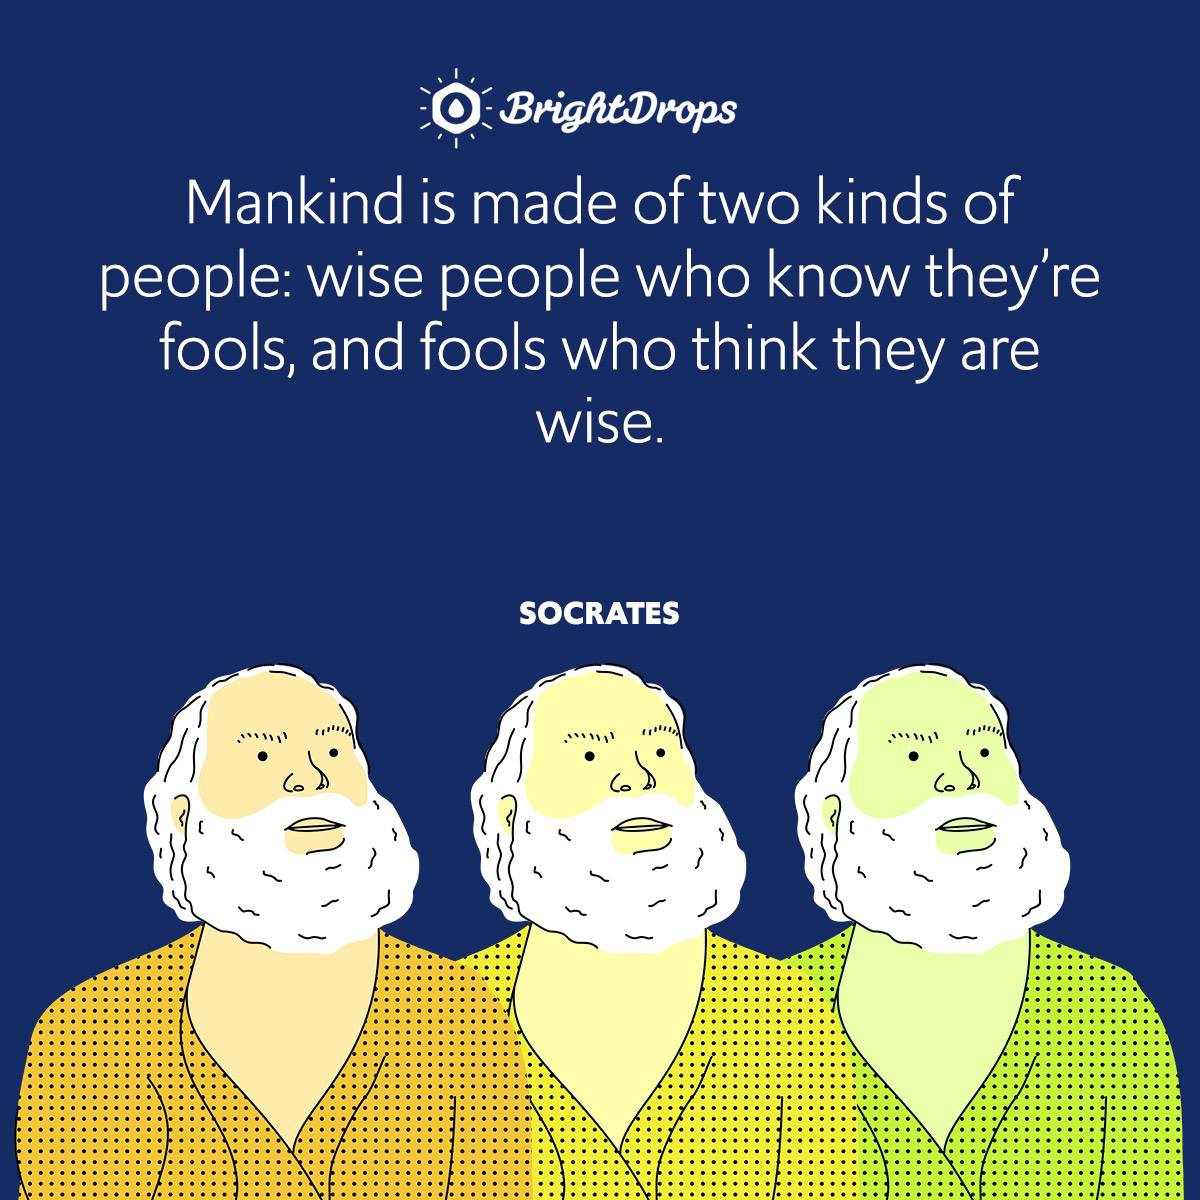 Mankind is made of two kinds of people: wise people who know they're fools, and fools who think they are wise.